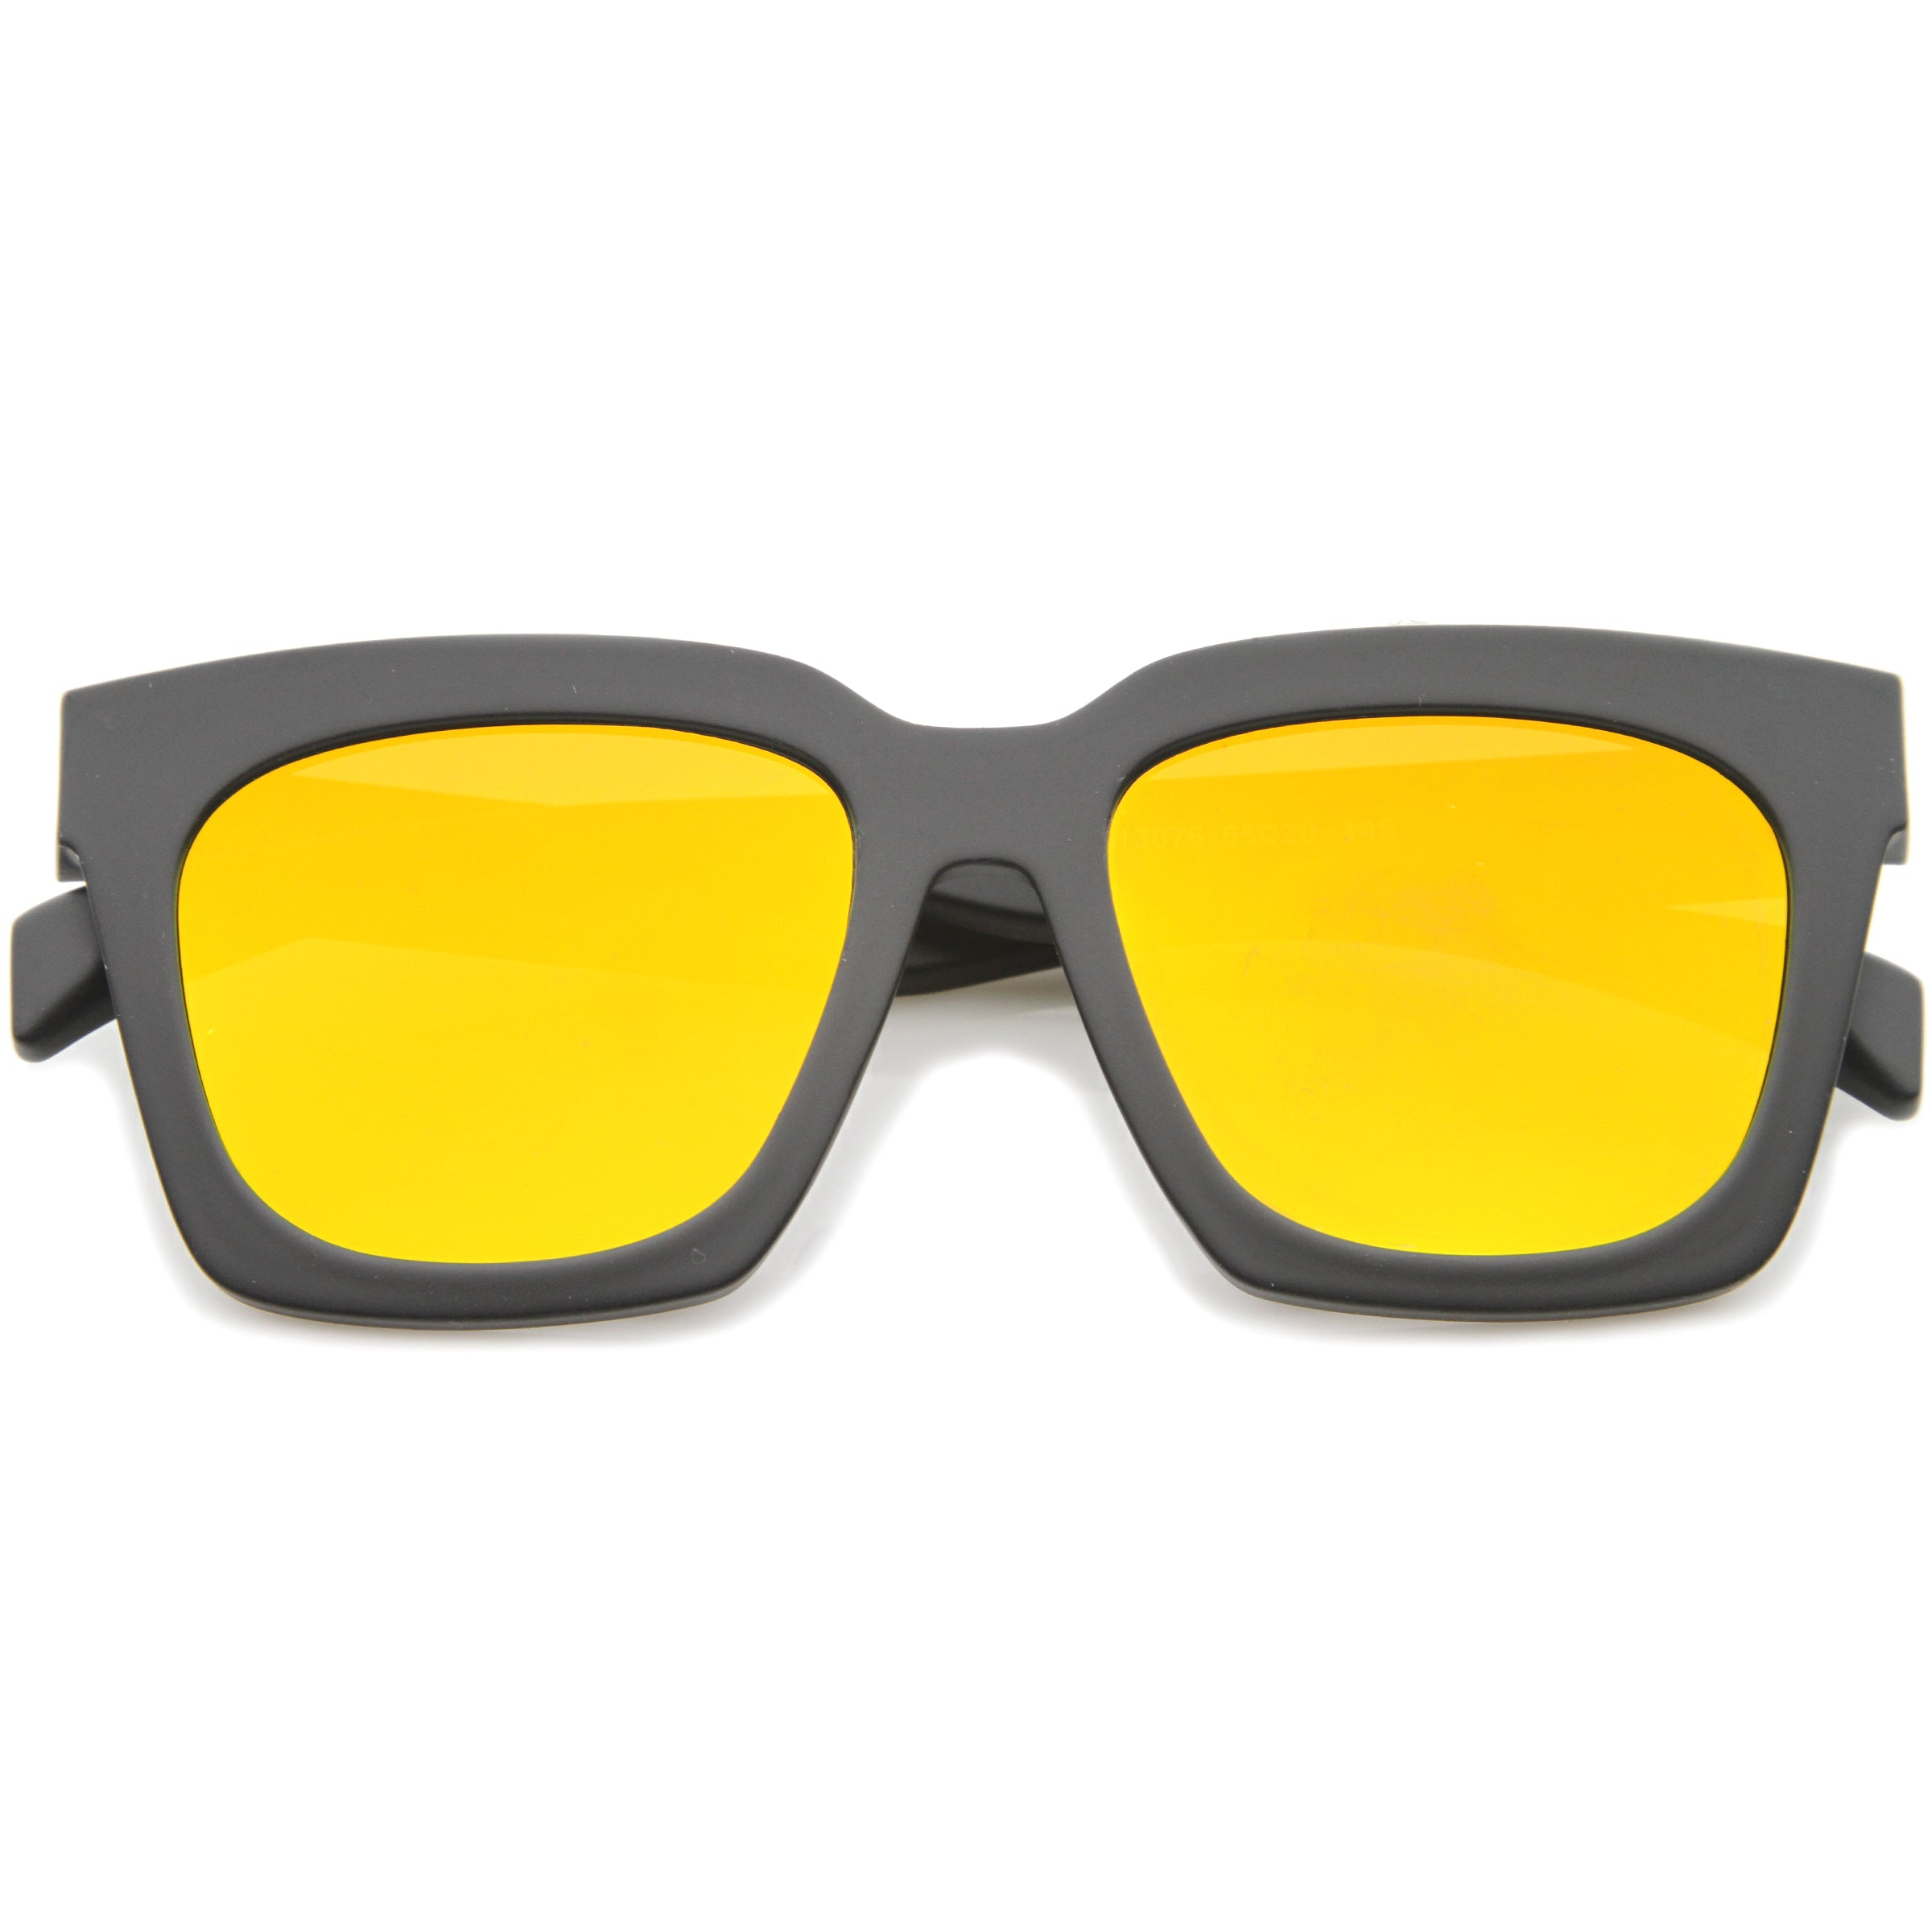 Retro Matte Horn Rimmed Colored Mirror Flat Lens Oversize Square Sunglasses 54mm - sunglass.la - 9